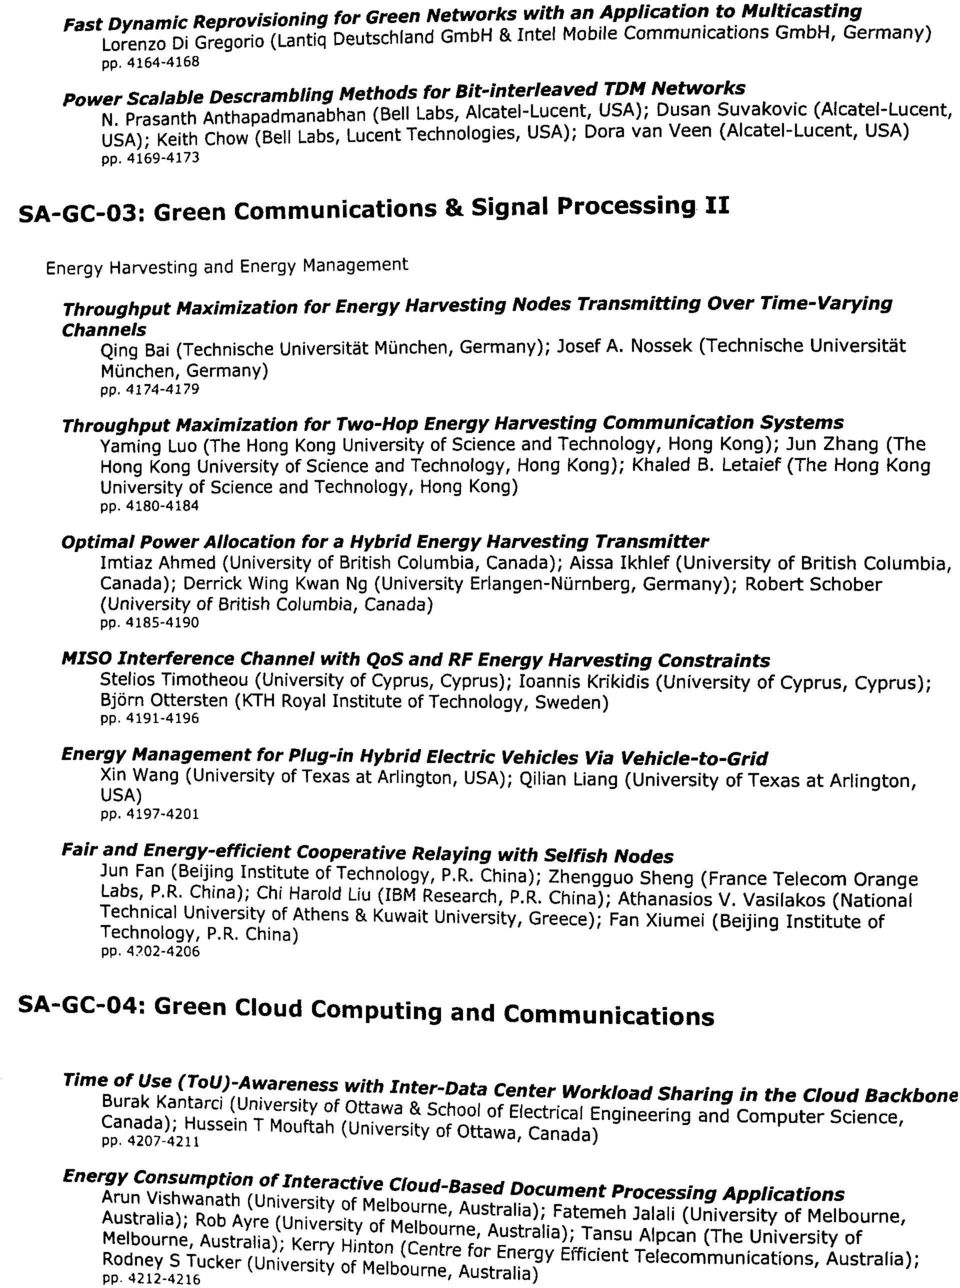 4169-4173 (Bell Labs, Alcatel-Lucent, USA); Dusan Suvakovic (Alcatel-Lucent, Labs, Lucent Technologies, USA); Dora van Veen (Alcatel-Lucent, USA) SA-GC-03: Green Communications & Signal Processing II